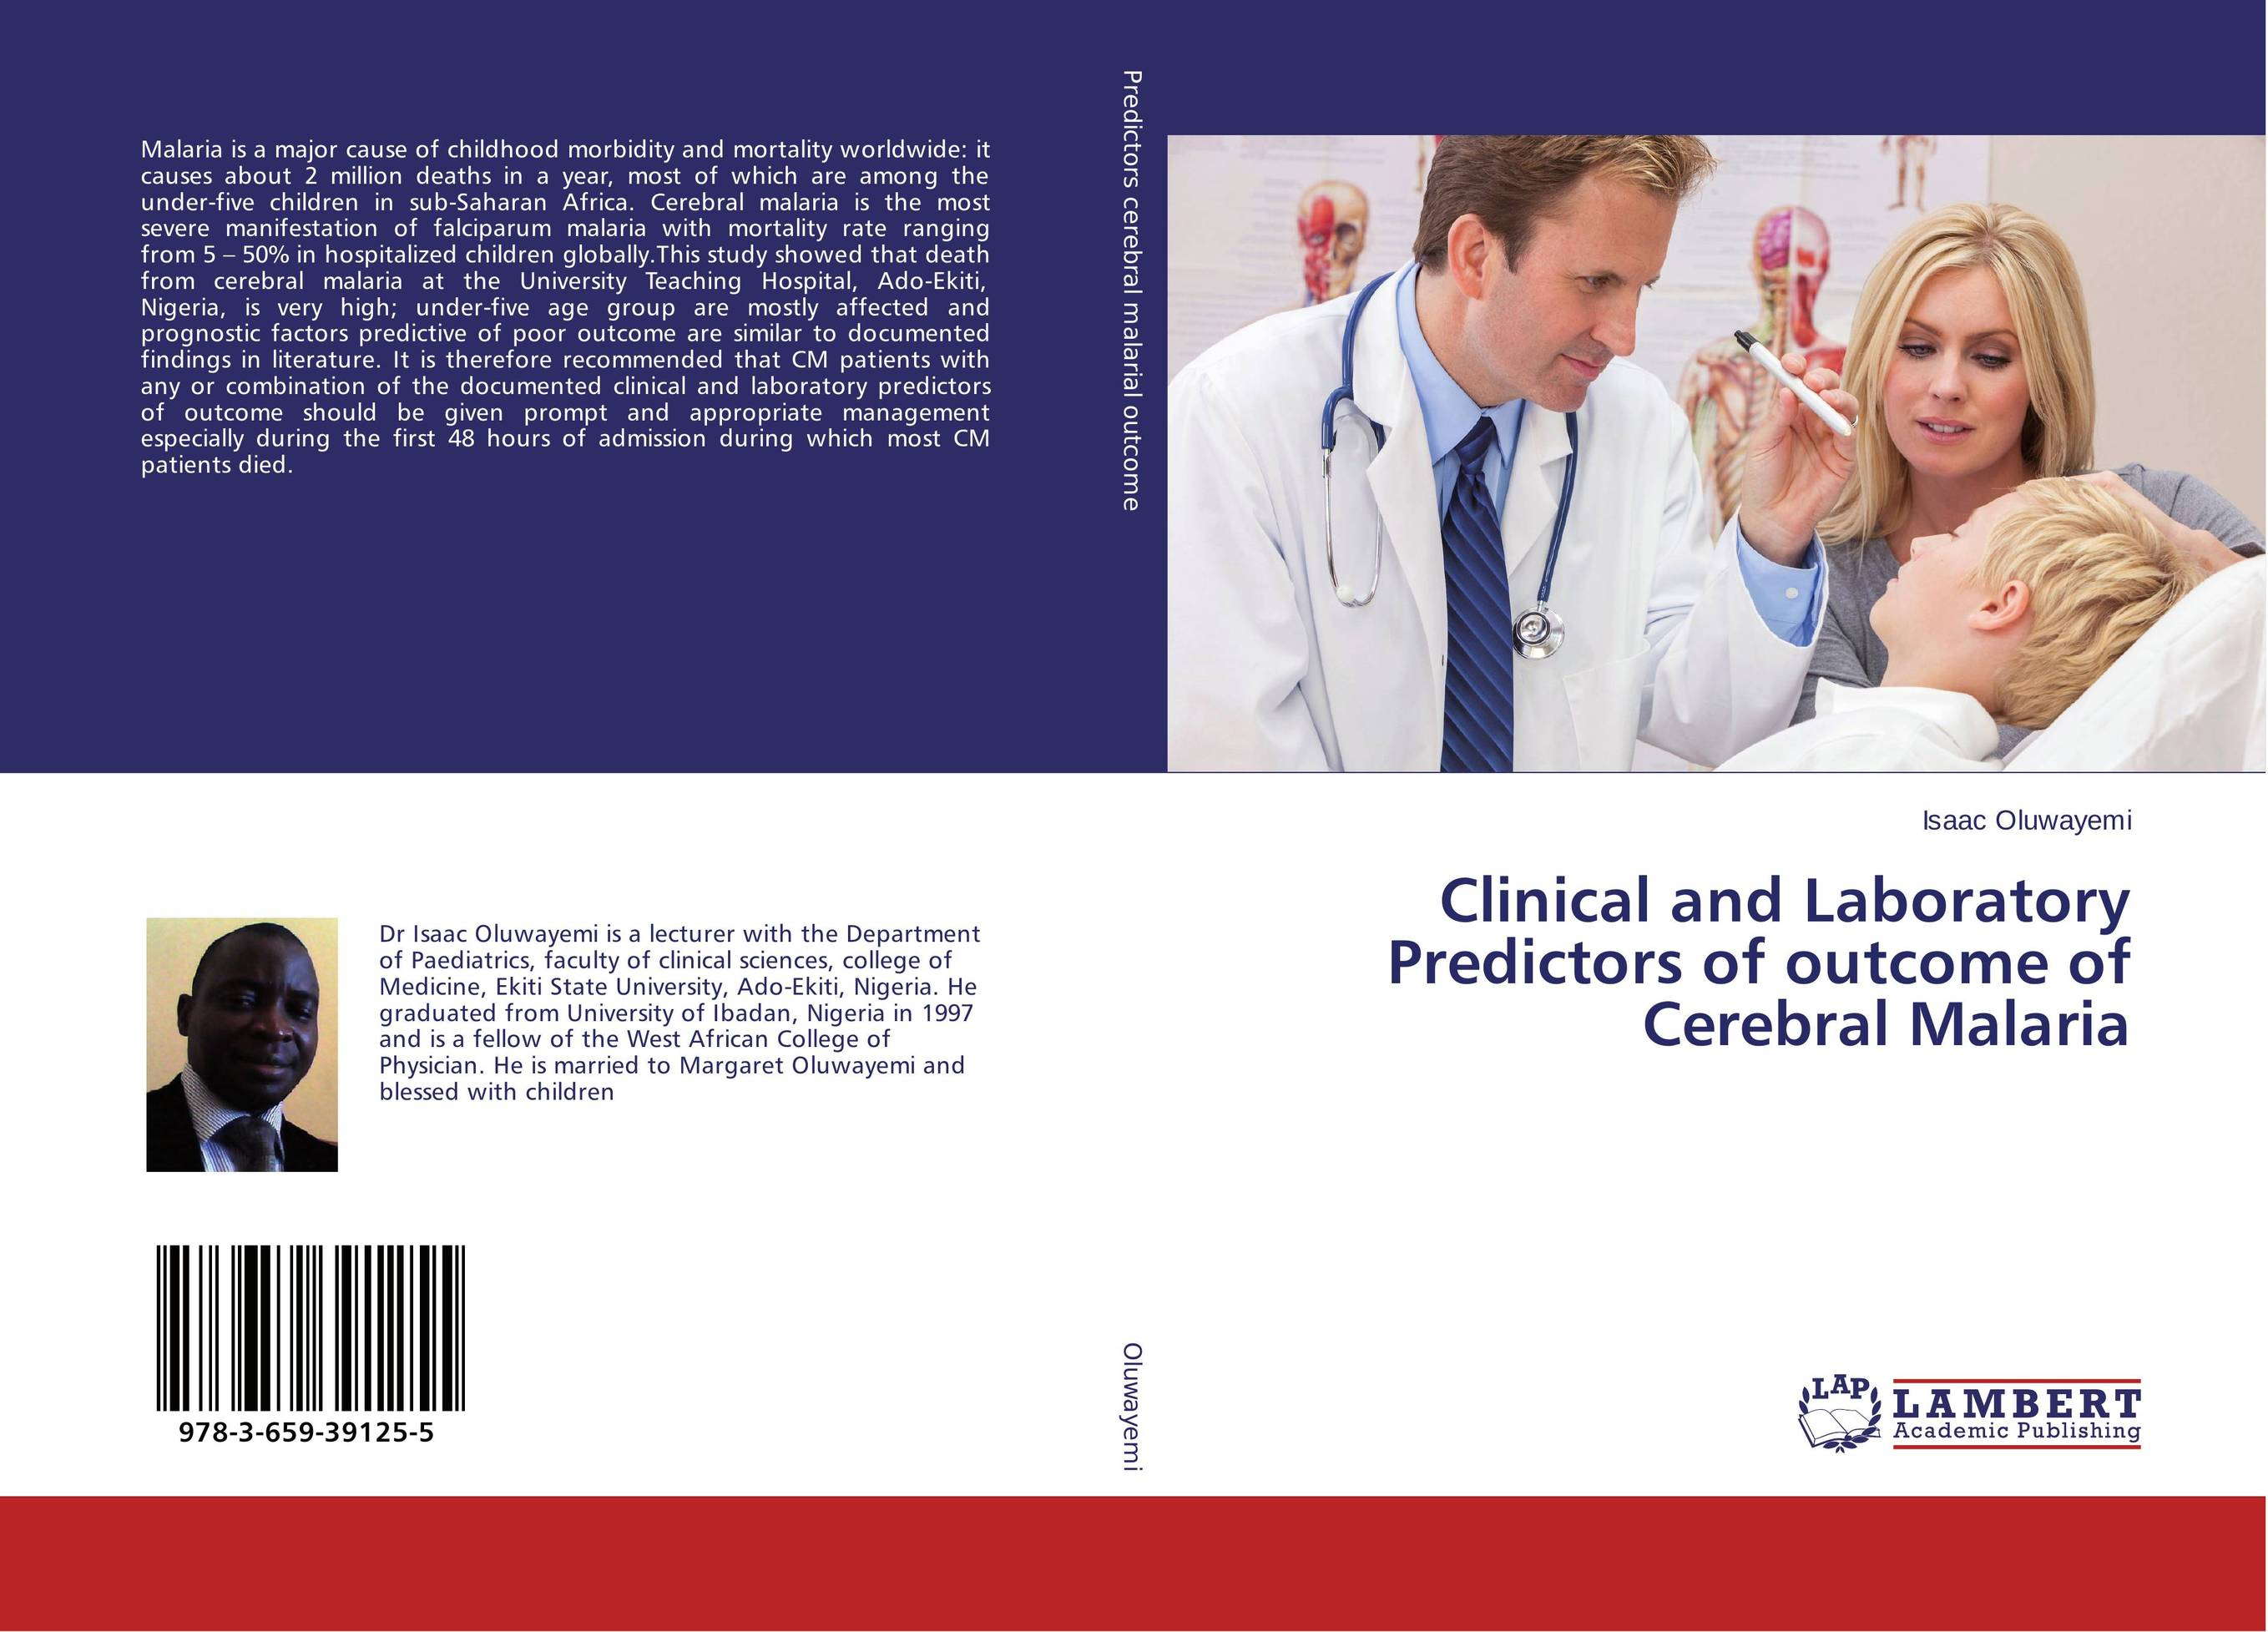 Clinical and Laboratory Predictors of outcome of Cerebral Malaria